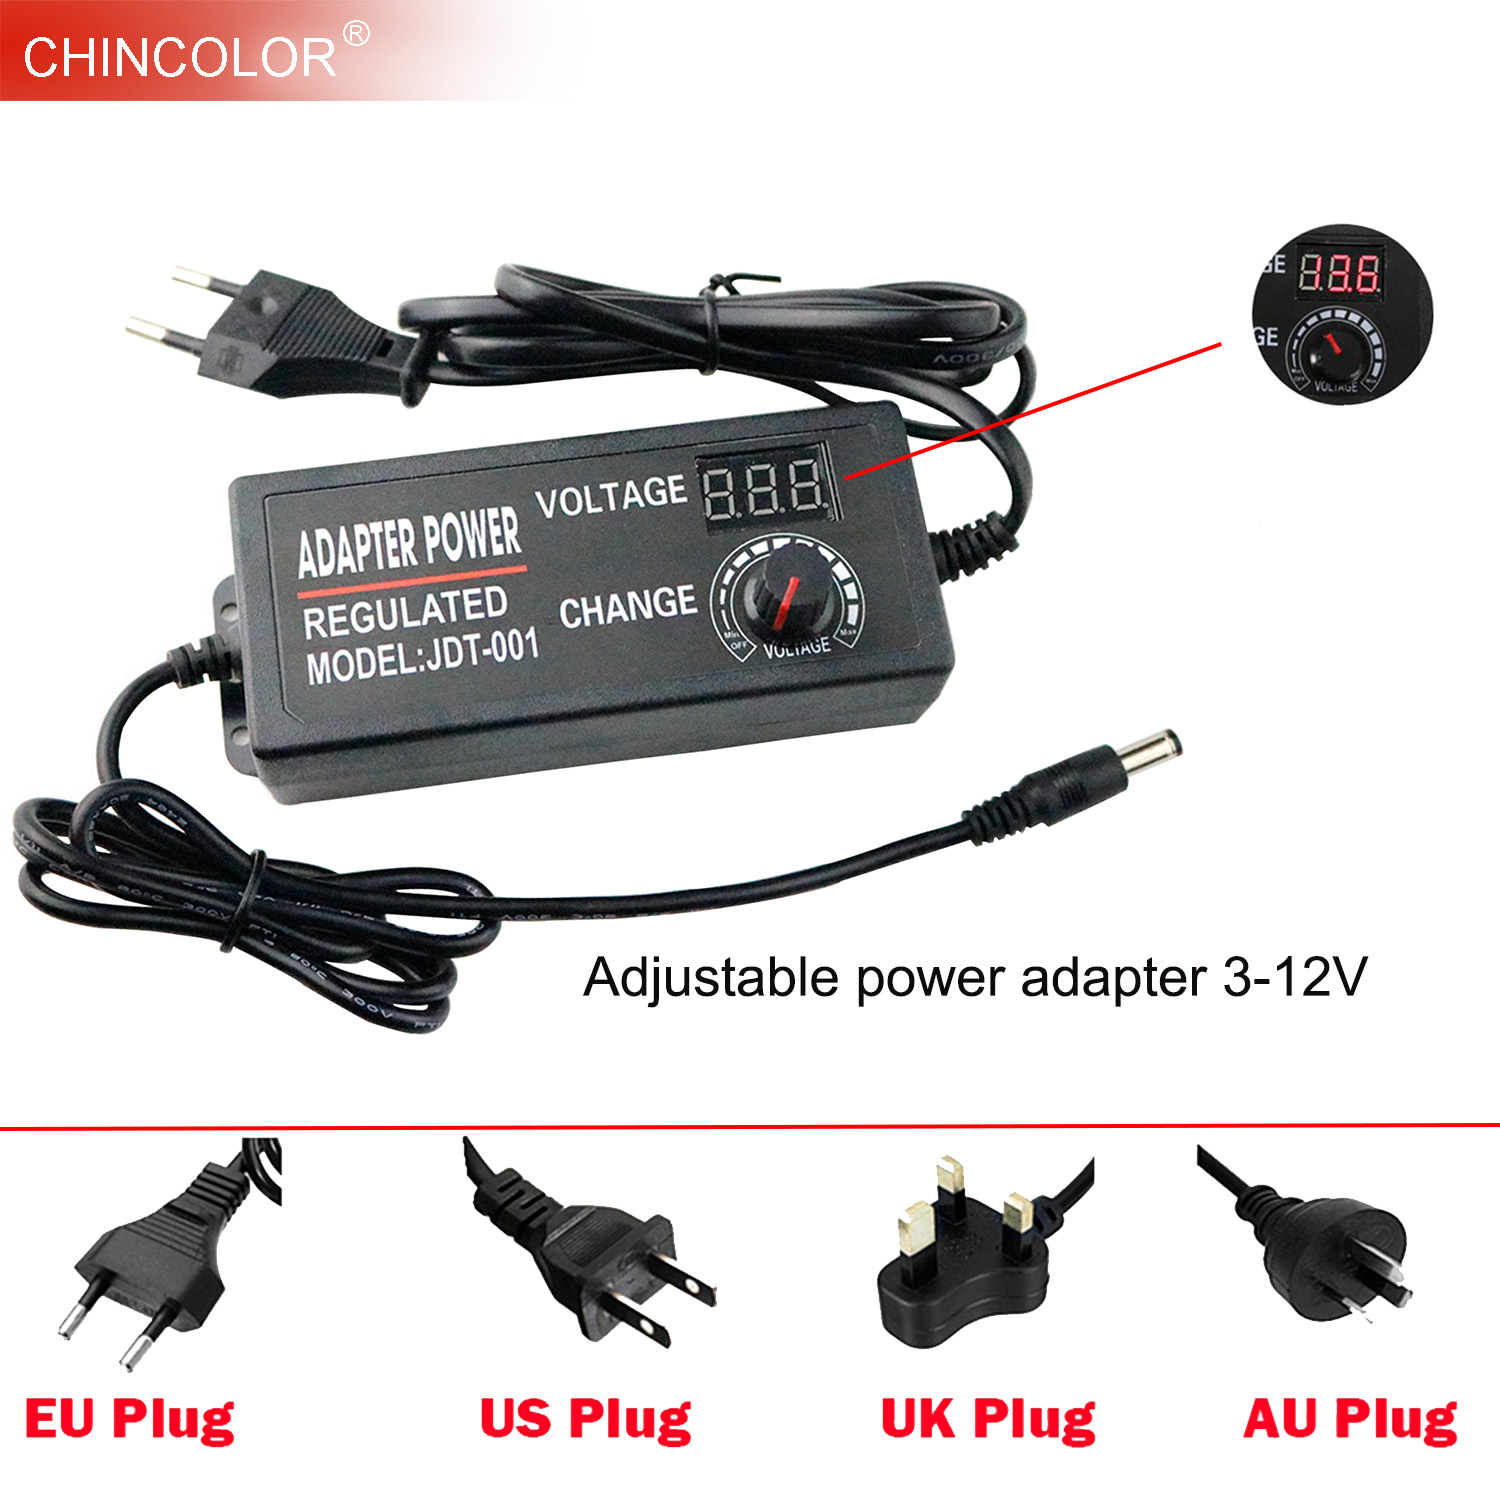 Adjustable AC DC Adapter 3V-12V 5A 60W Switching <font><b>Power</b></font> <font><b>Supply</b></font> Regulated <font><b>Power</b></font> Adapter Convertor EU US UK AU Cord Wall Charger JQ image